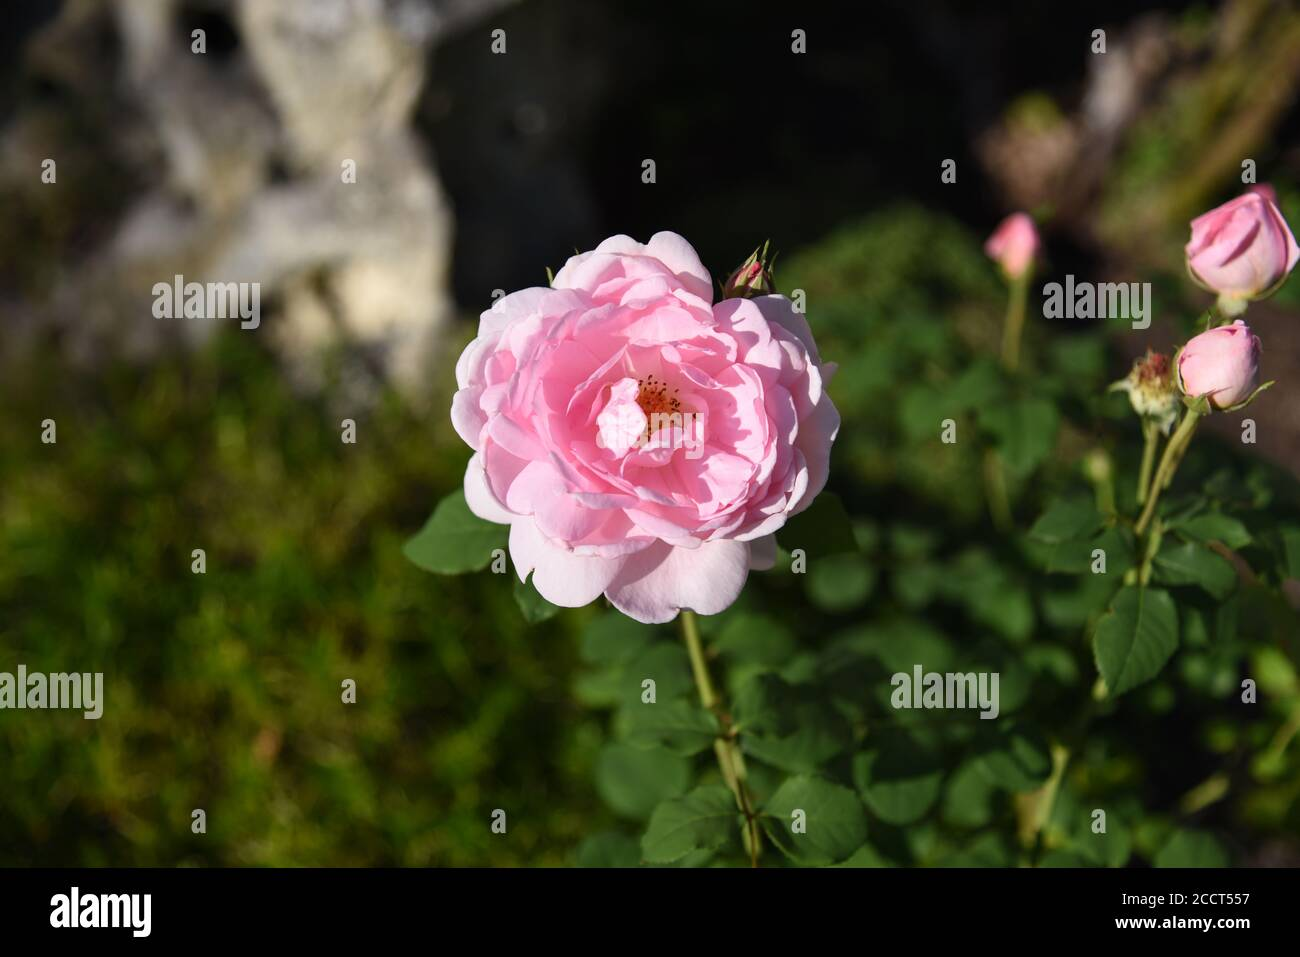 Rose with unsharp background Stock Photo